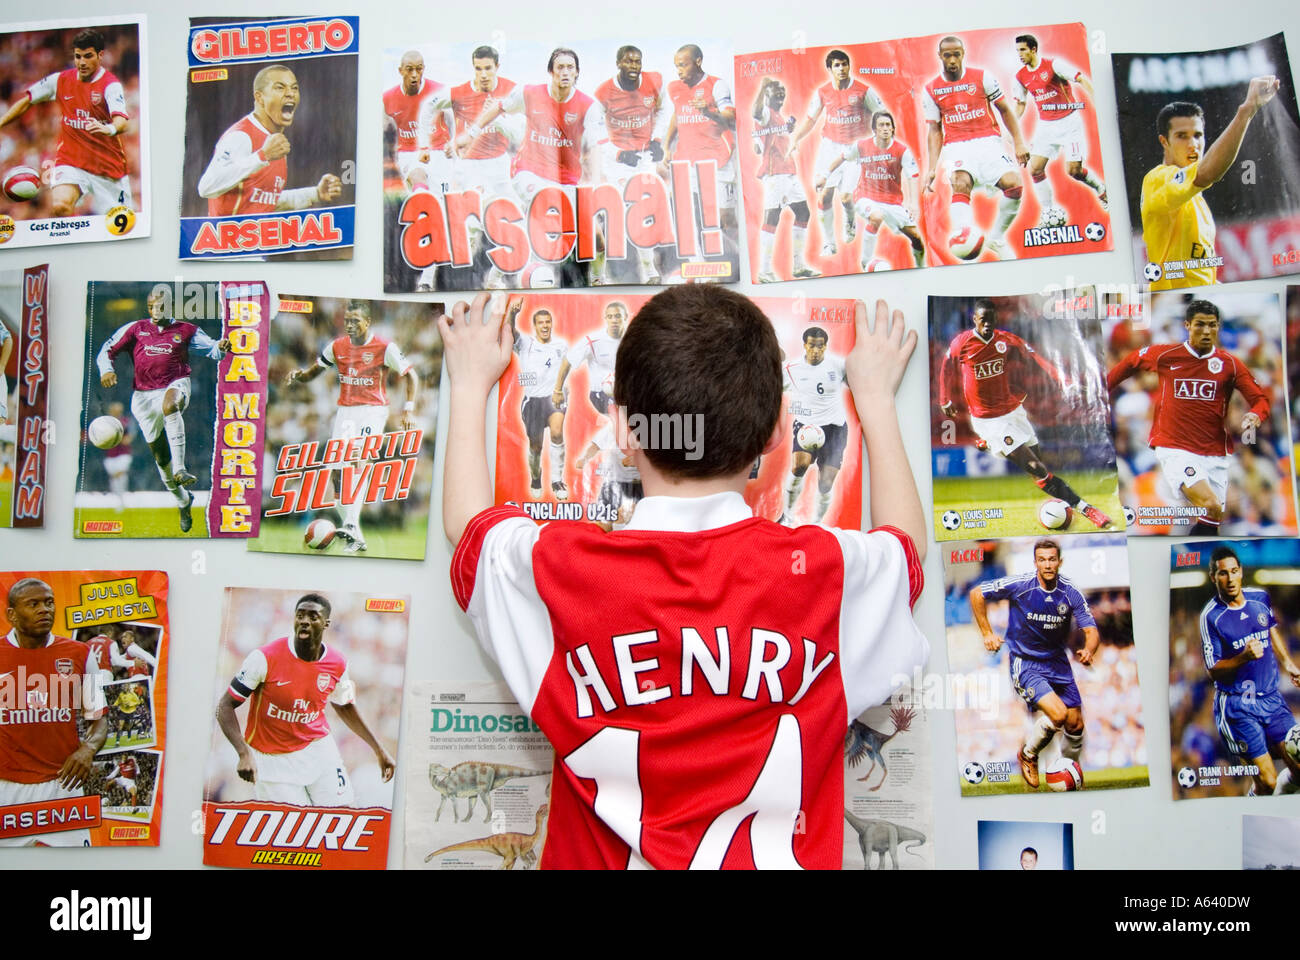 Bedroom wall with posters - Stock Photo Young Arsenal Football Supporter Boy Putting Up Posters On His Bedroom Wall London England Uk